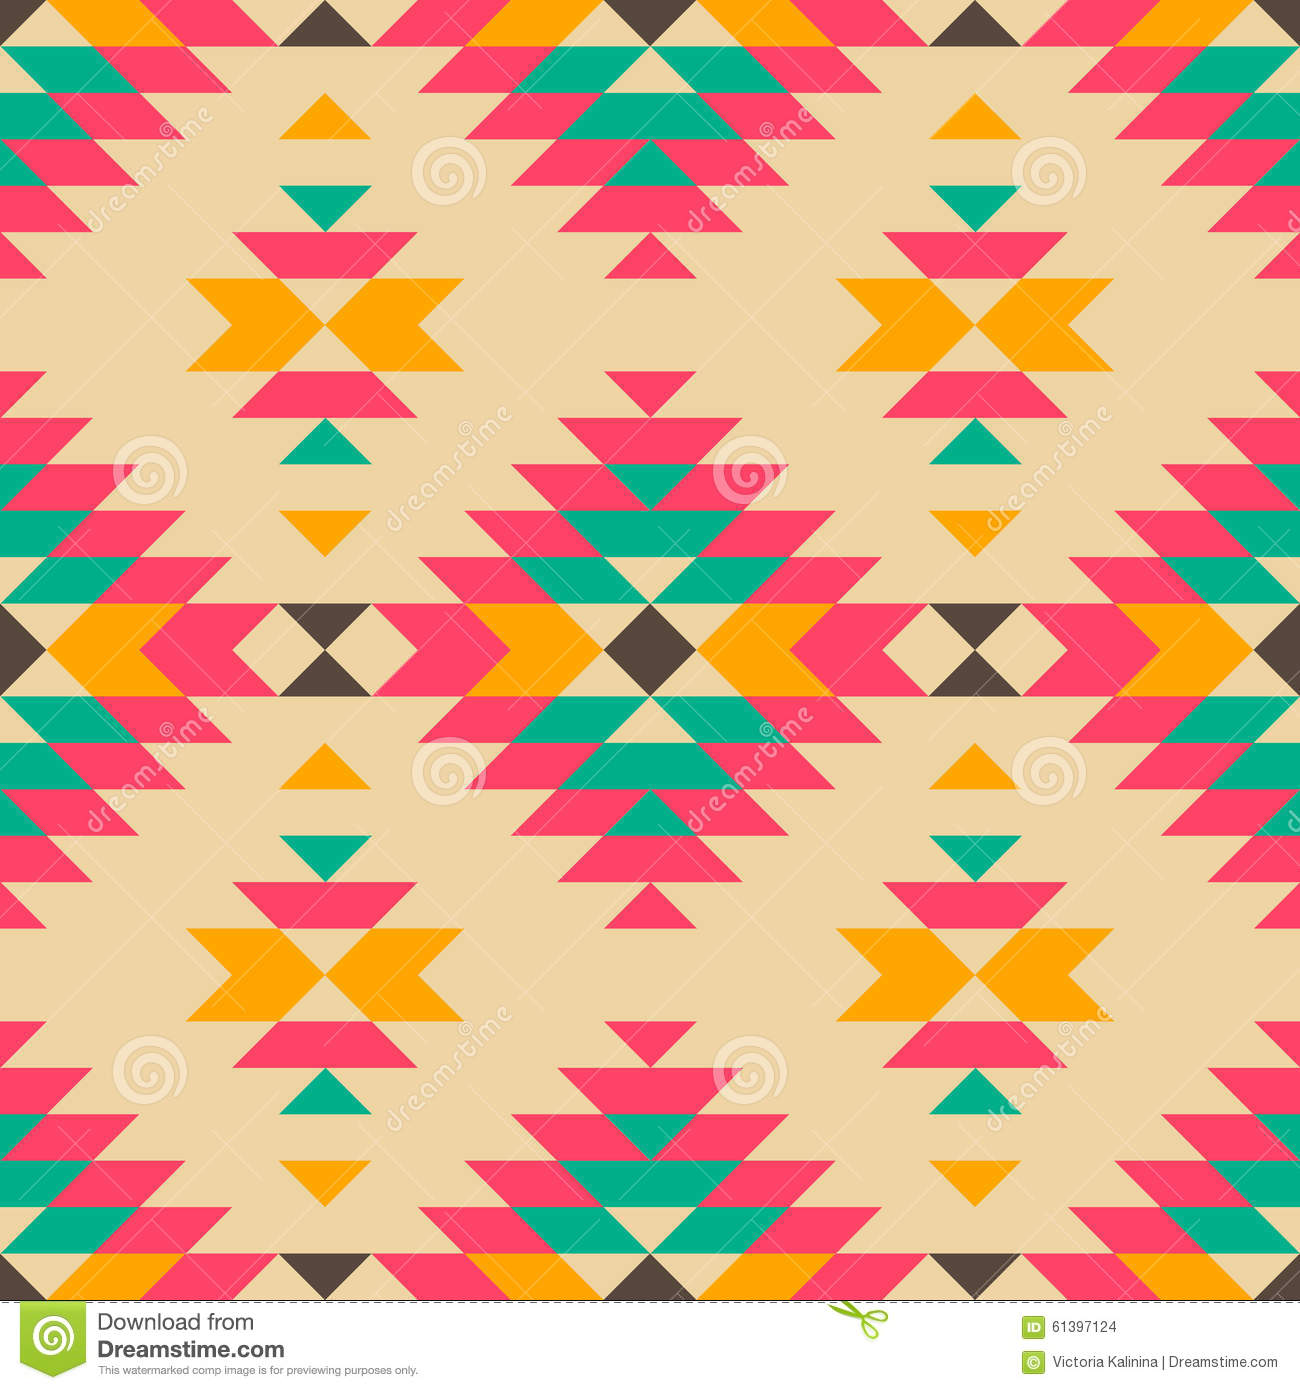 Native American Pattern Stock Vector - Image: 61397124